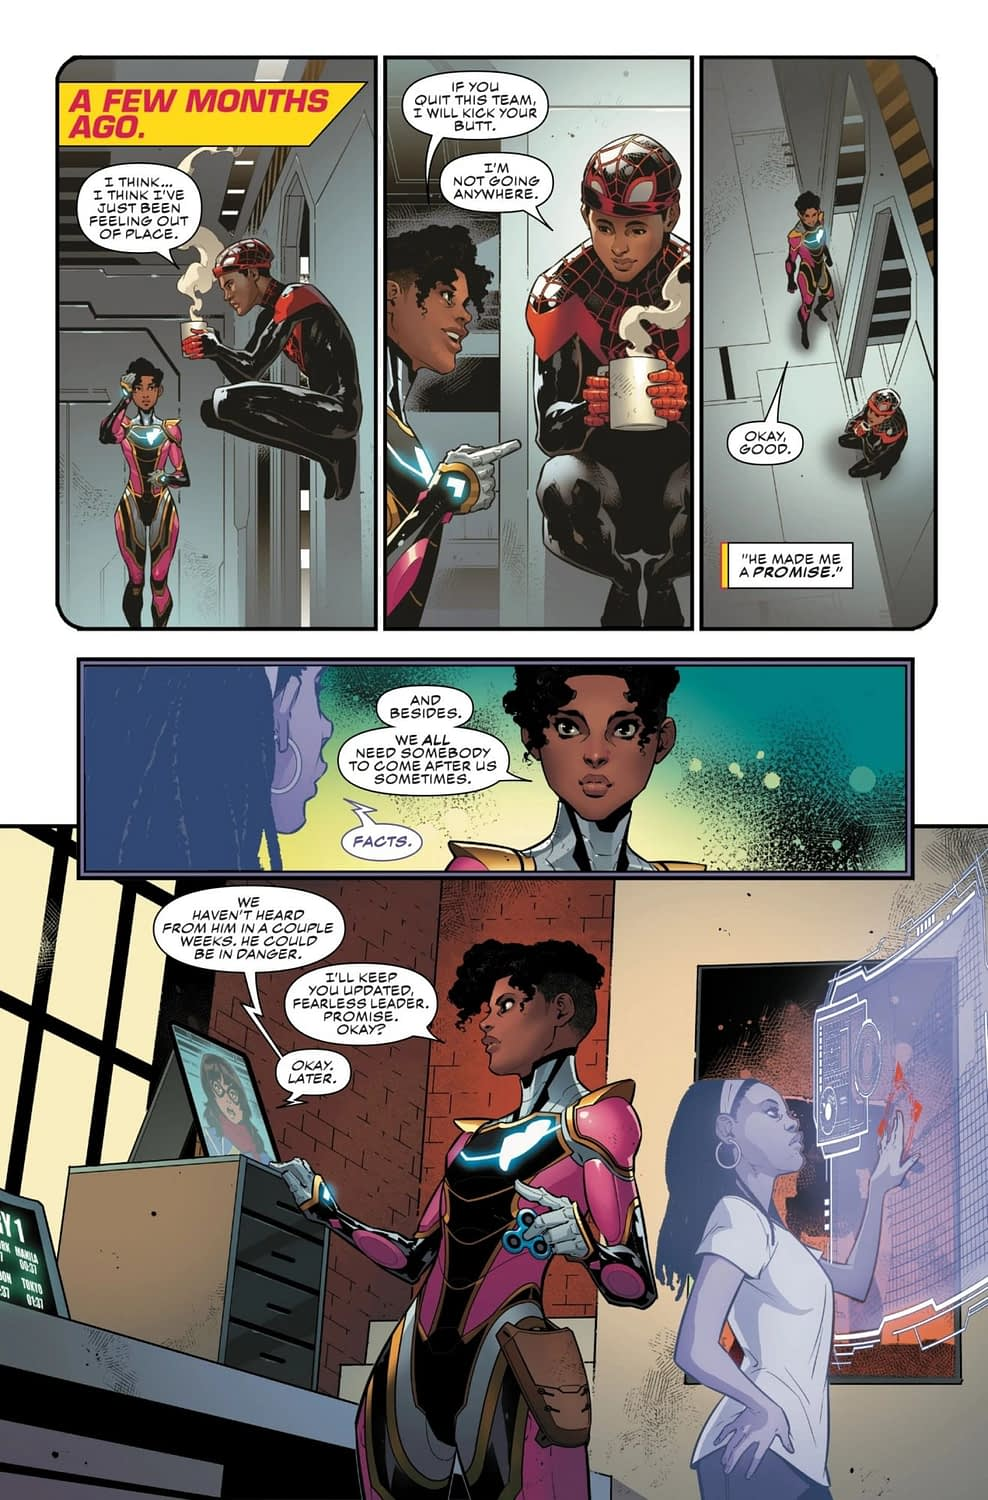 Maybe Spider-People and Iron-People Shouldn't Be Friends? Ironheart #6 Preview